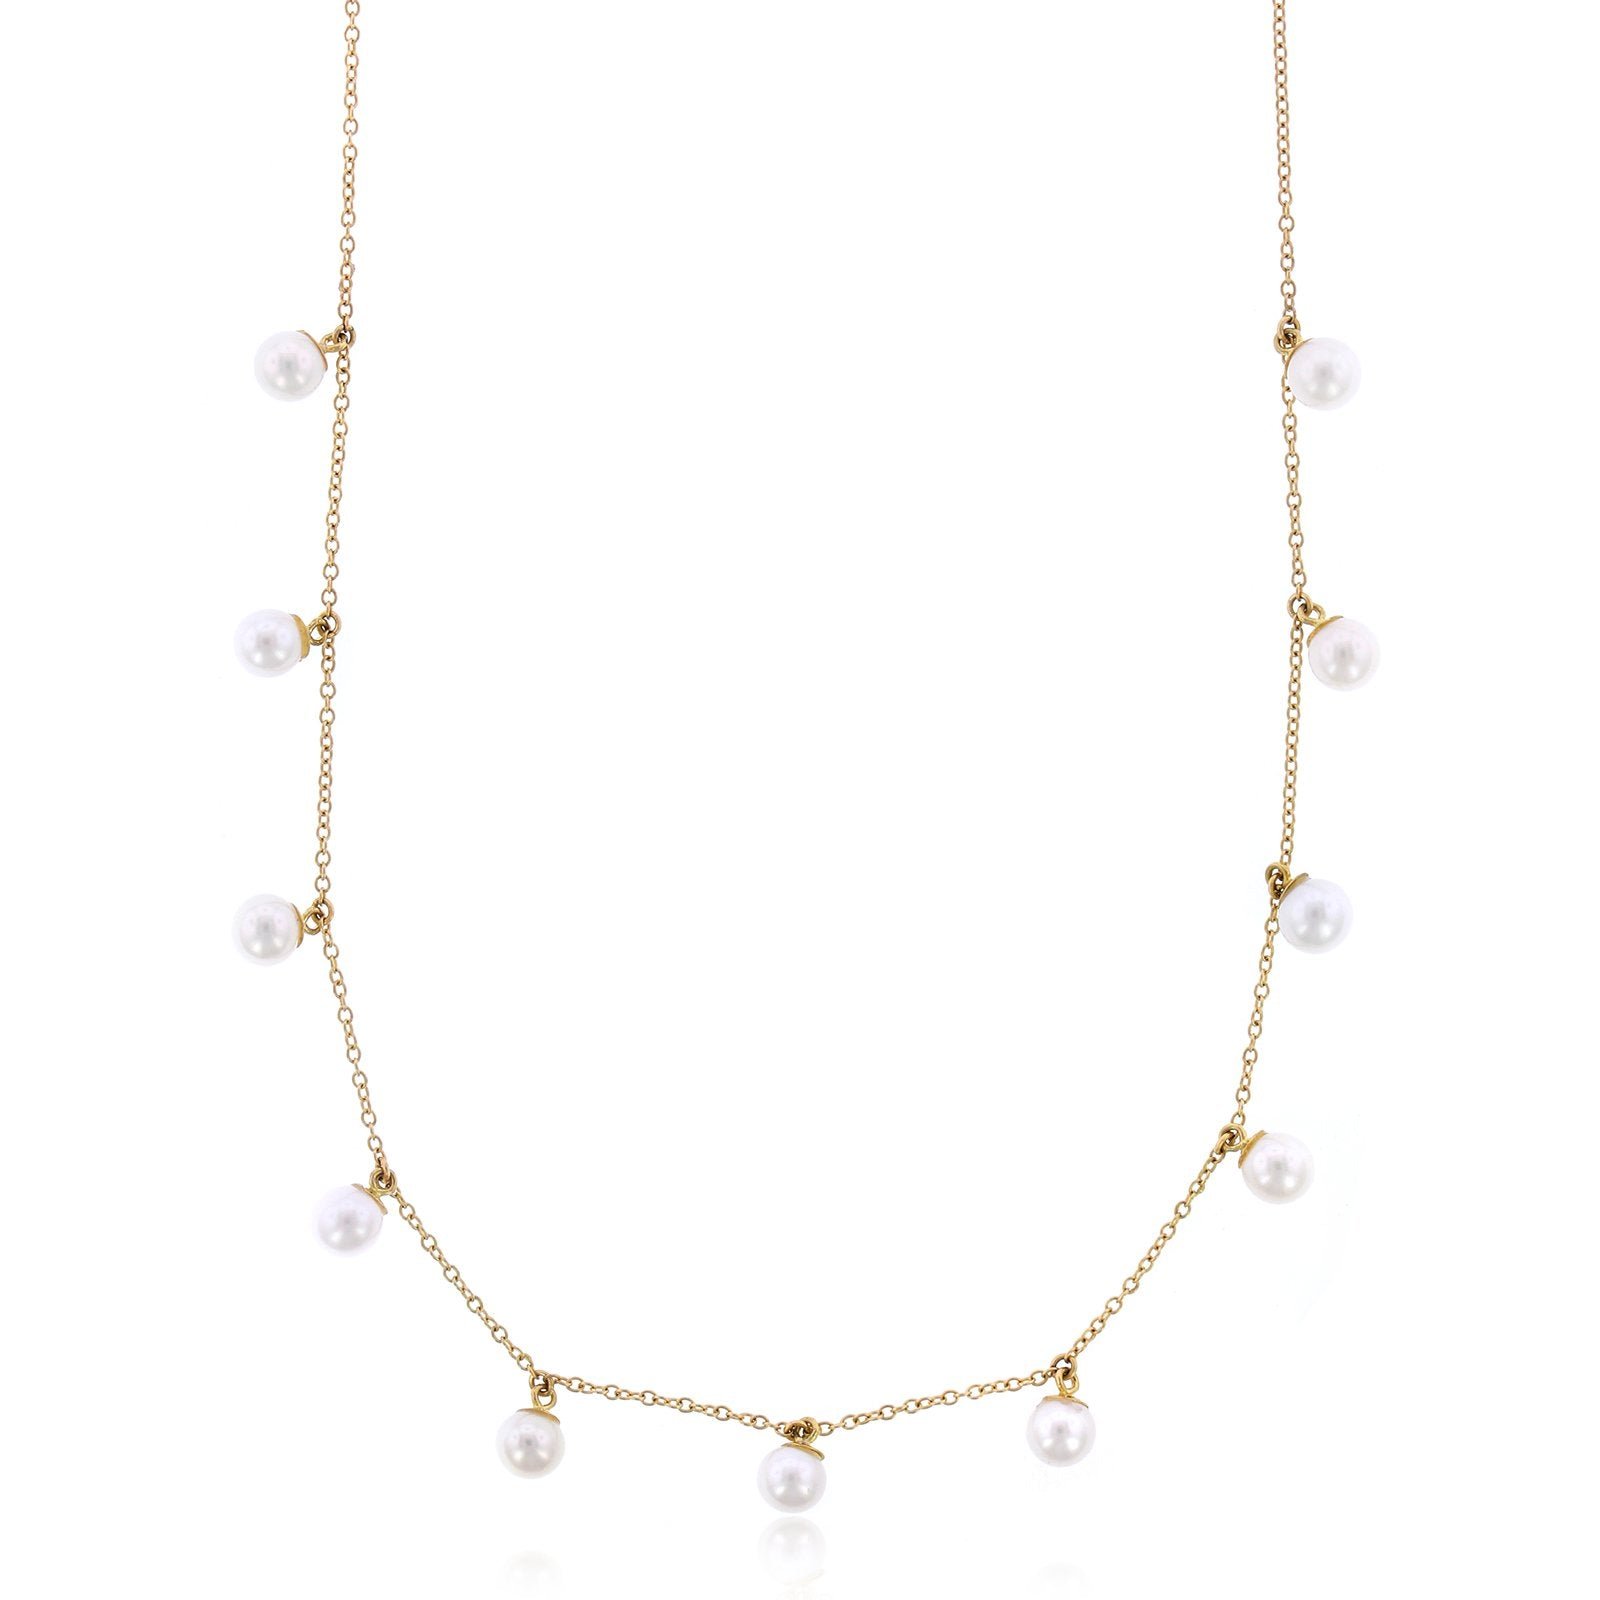 14K Yellow Gold Pearl Choker Chain Necklace